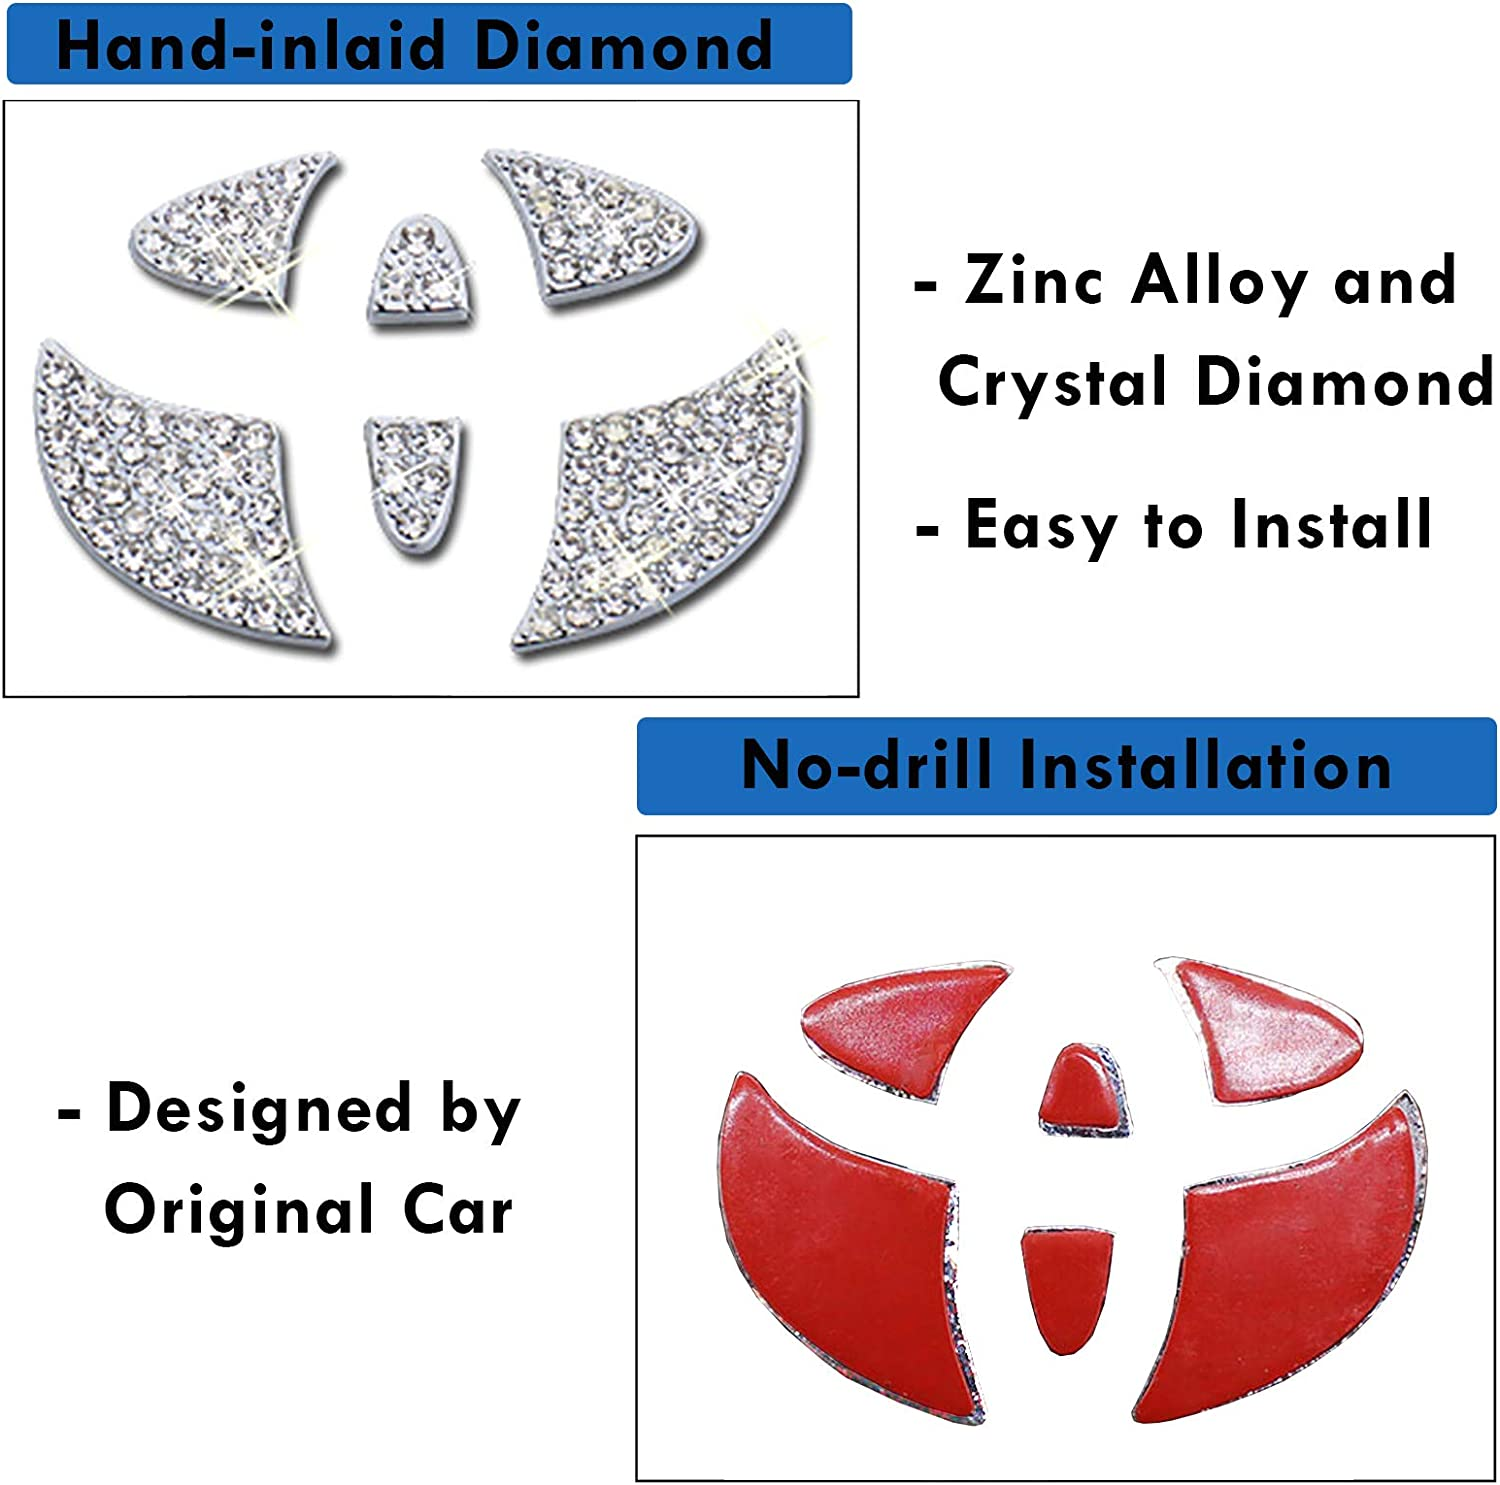 Moonlinks Steering Wheel Bling Crystal Emblem Interior Decal Diamond Sticker Shiny Accessory Fit for Mercedes-Benz 1.77 in//45 mm